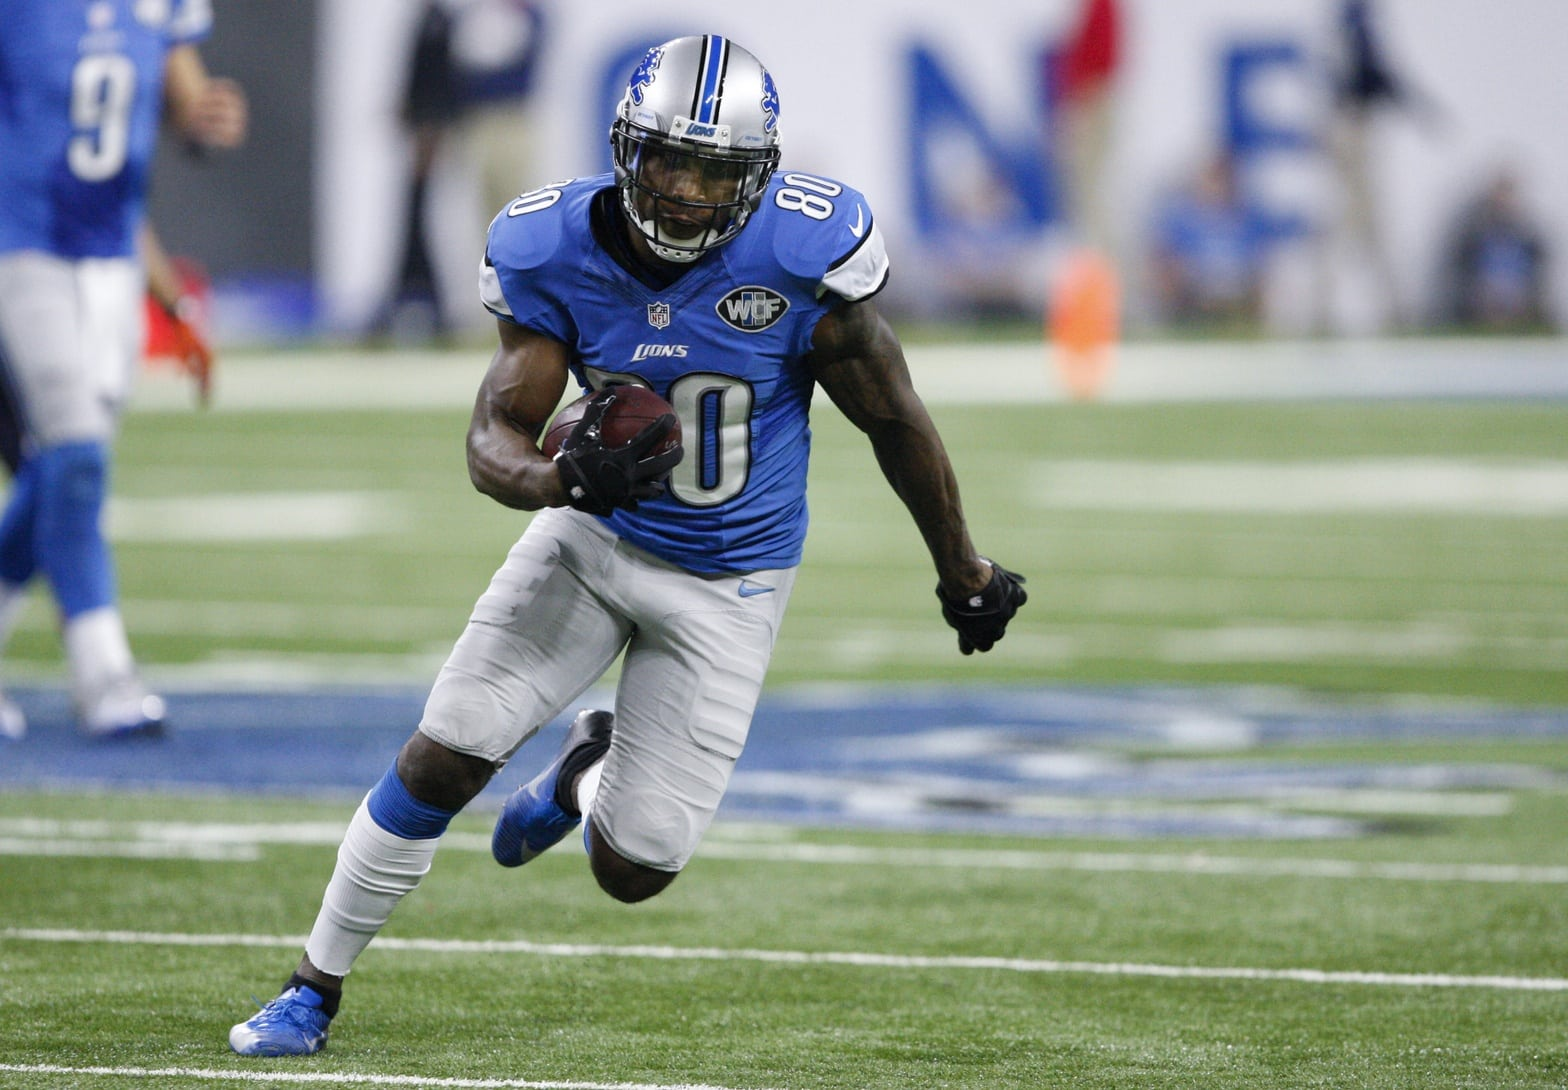 NFL free agent, Anquan Boldin